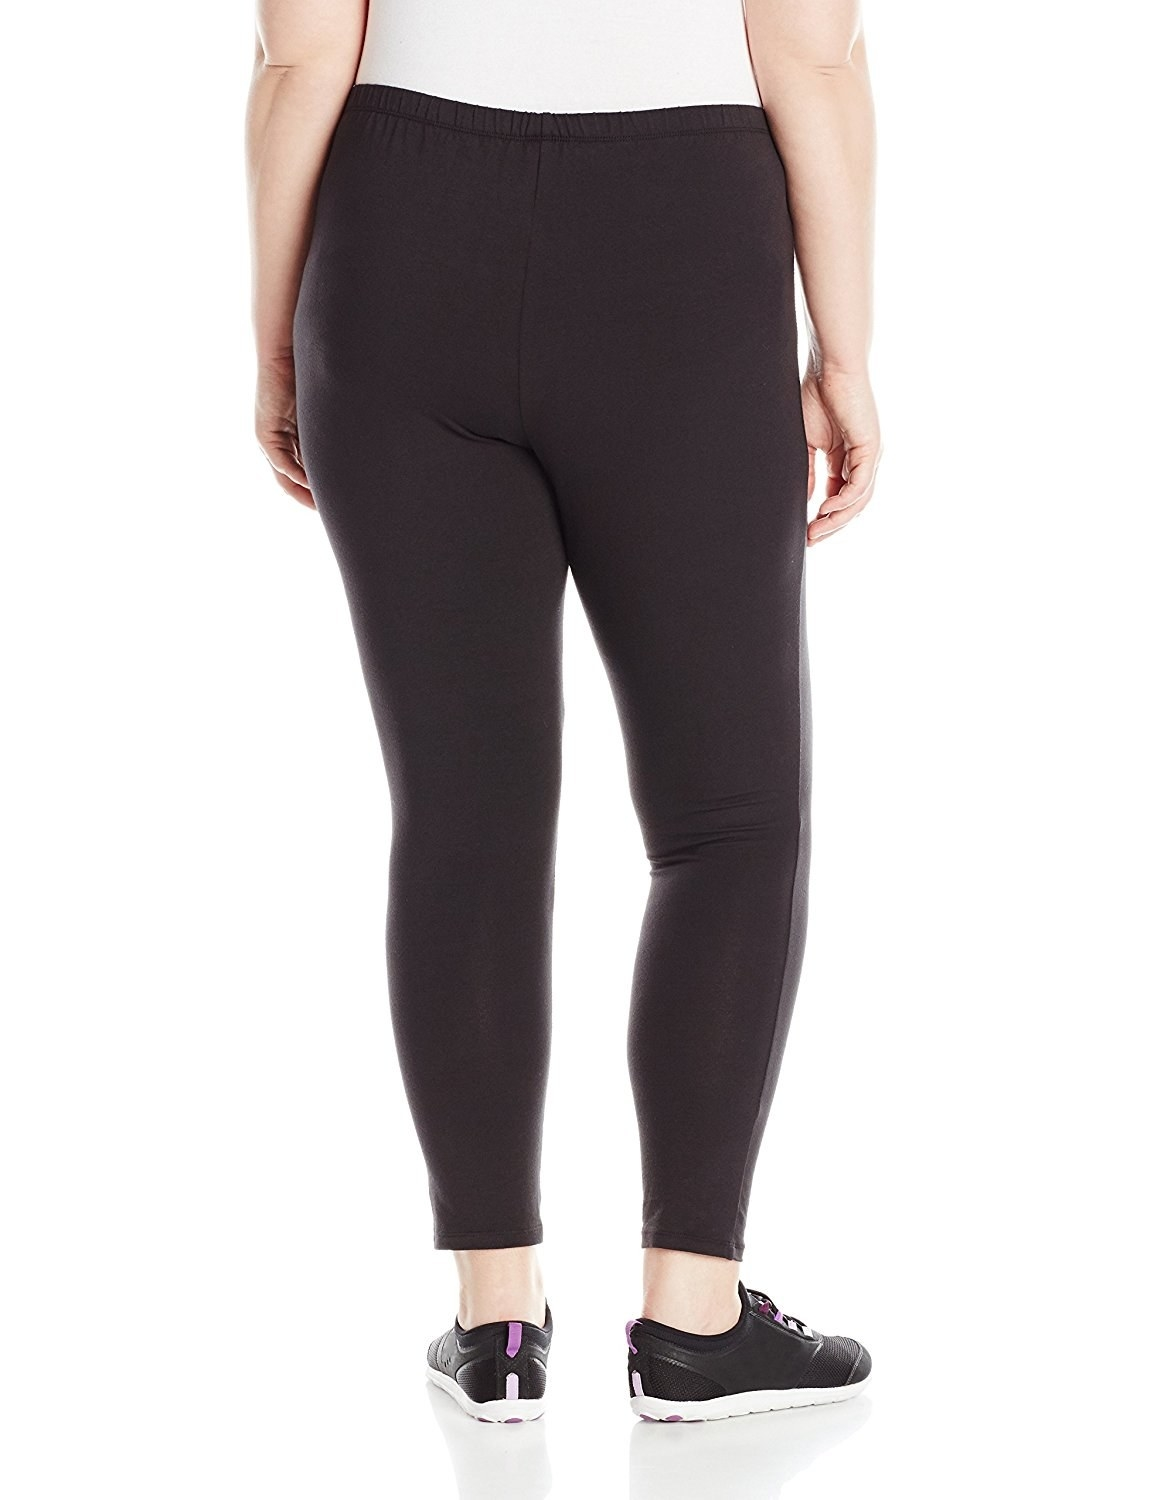 3dc4eafb303 21 Of The Best Pairs Of Leggings You Can Get On Amazon